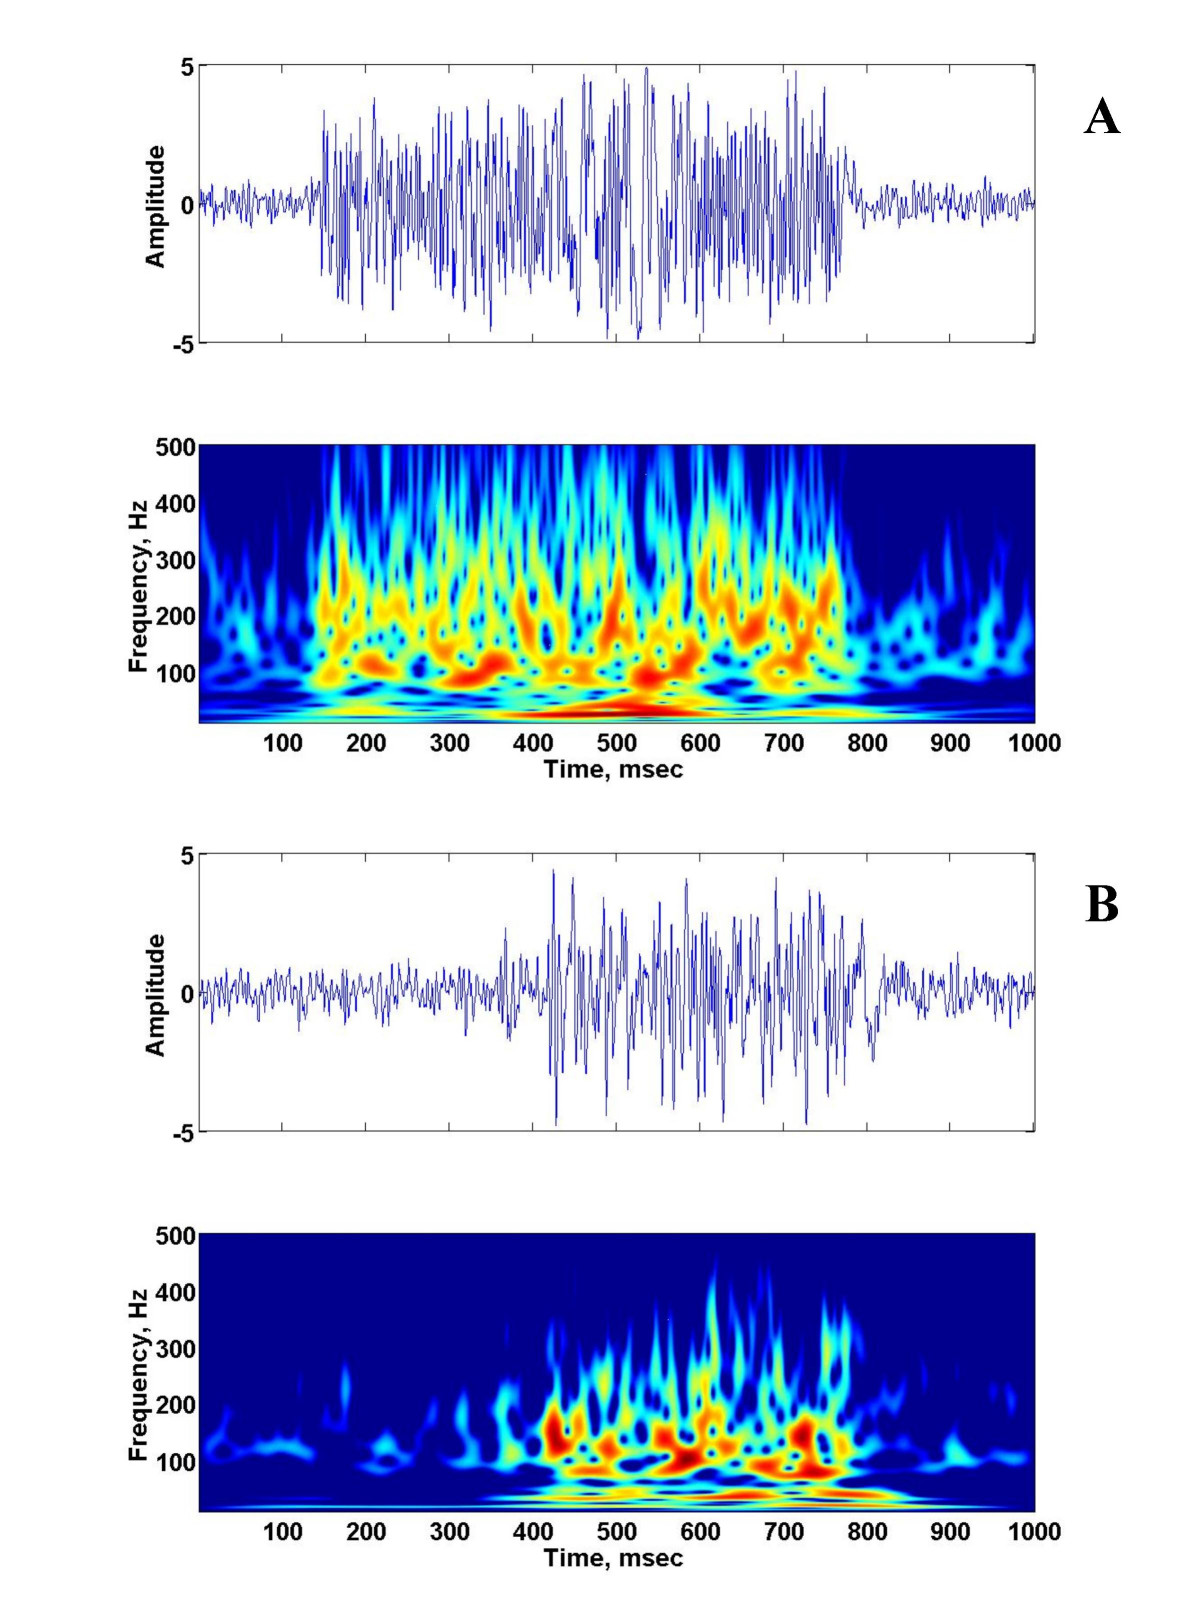 https://static-content.springer.com/image/art%3A10.1186%2F1743-0003-2-32/MediaObjects/12984_2005_Article_46_Fig1_HTML.jpg